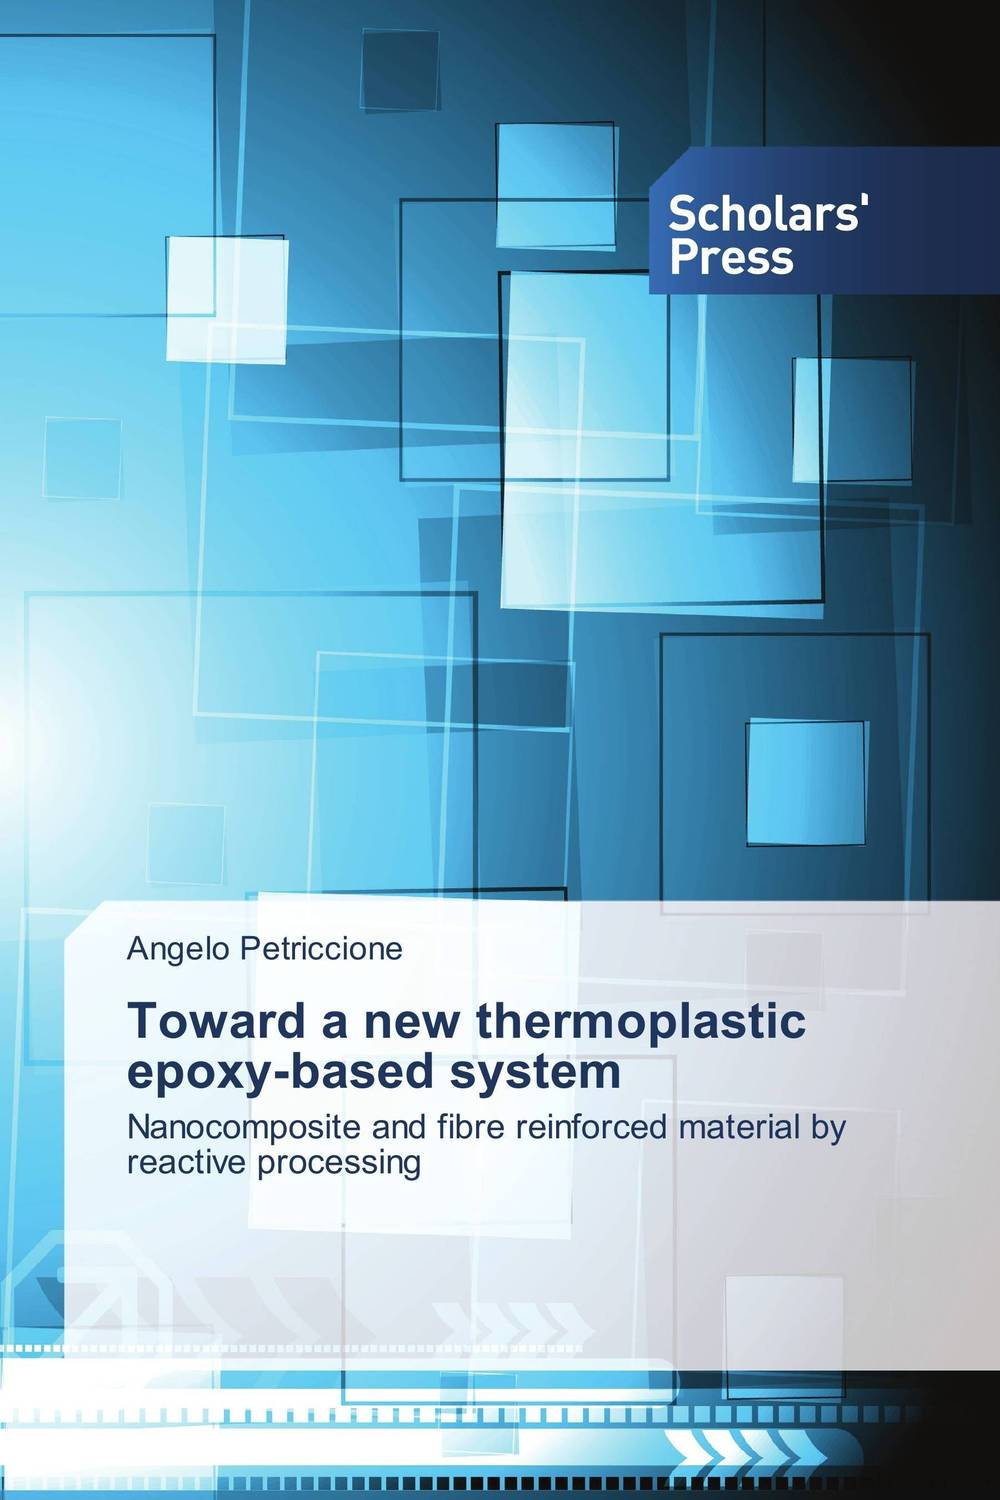 Toward a new thermoplastic epoxy-based system thermo operated water valves can be used in food processing equipments biomass boilers and hydraulic systems